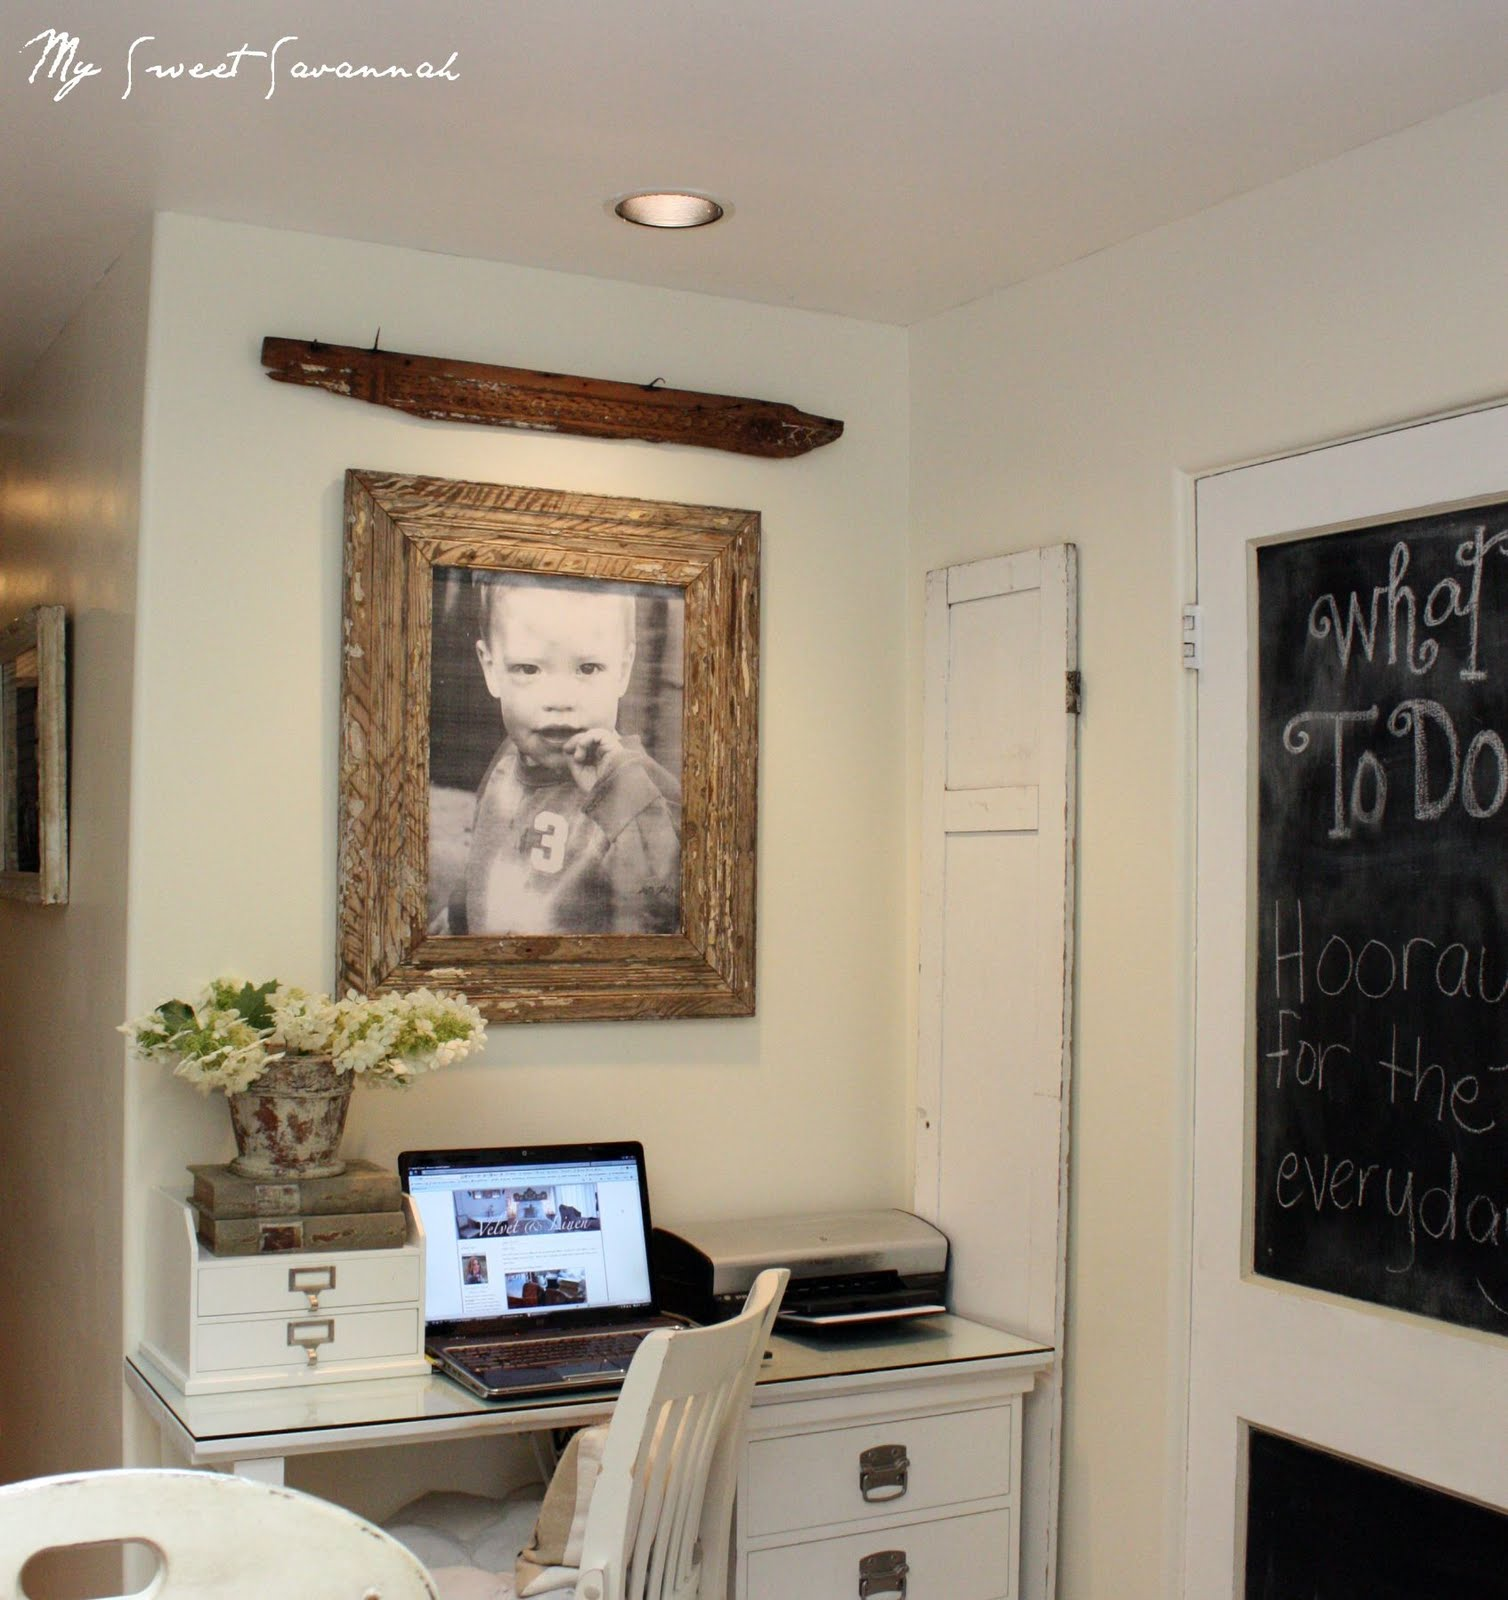 My sweet savannah where i blog from for Kitchen office nook